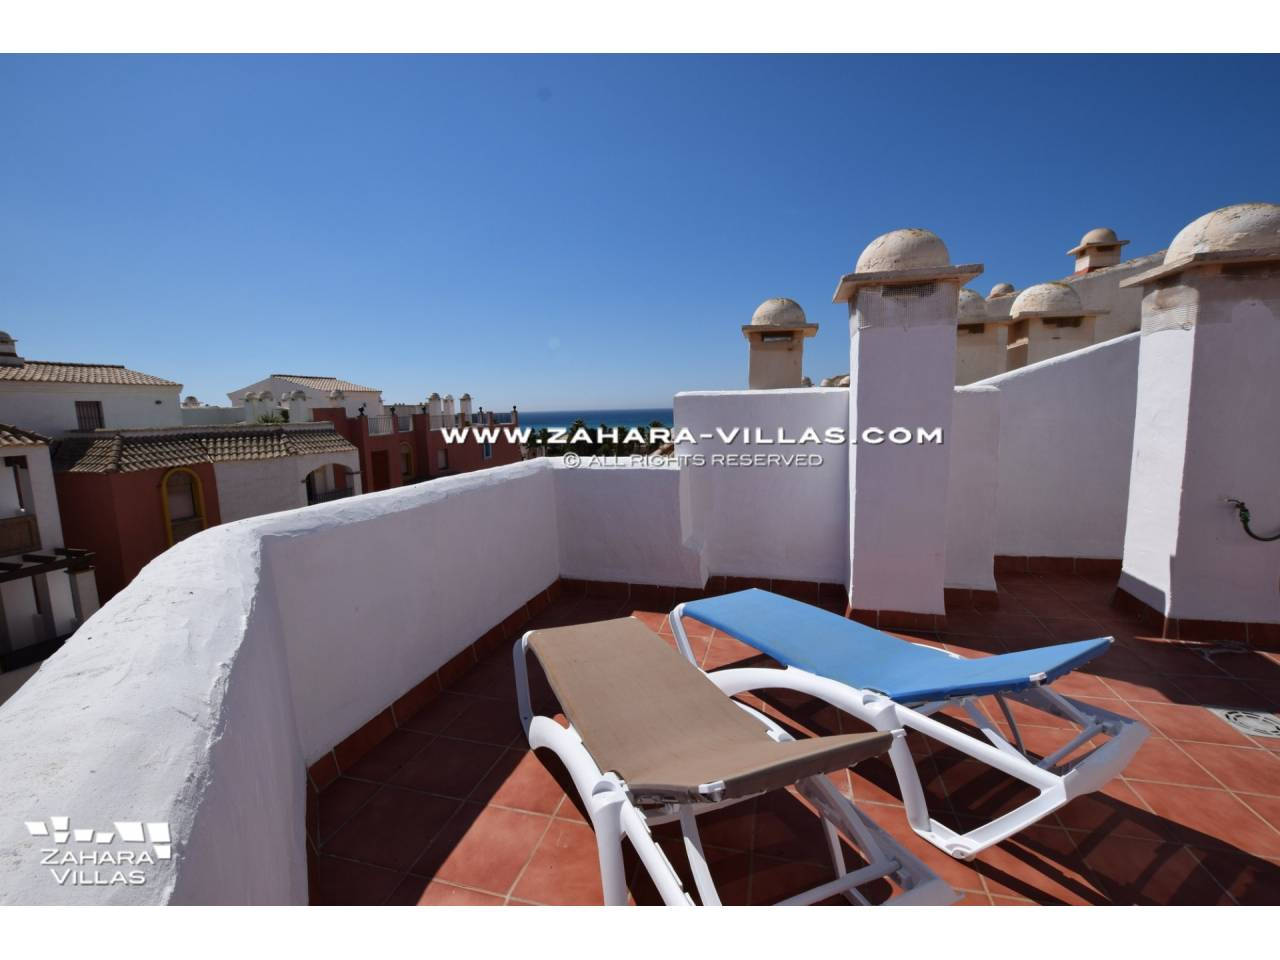 Imagen 1 de Penthouse apartment with excellent views to the sea.